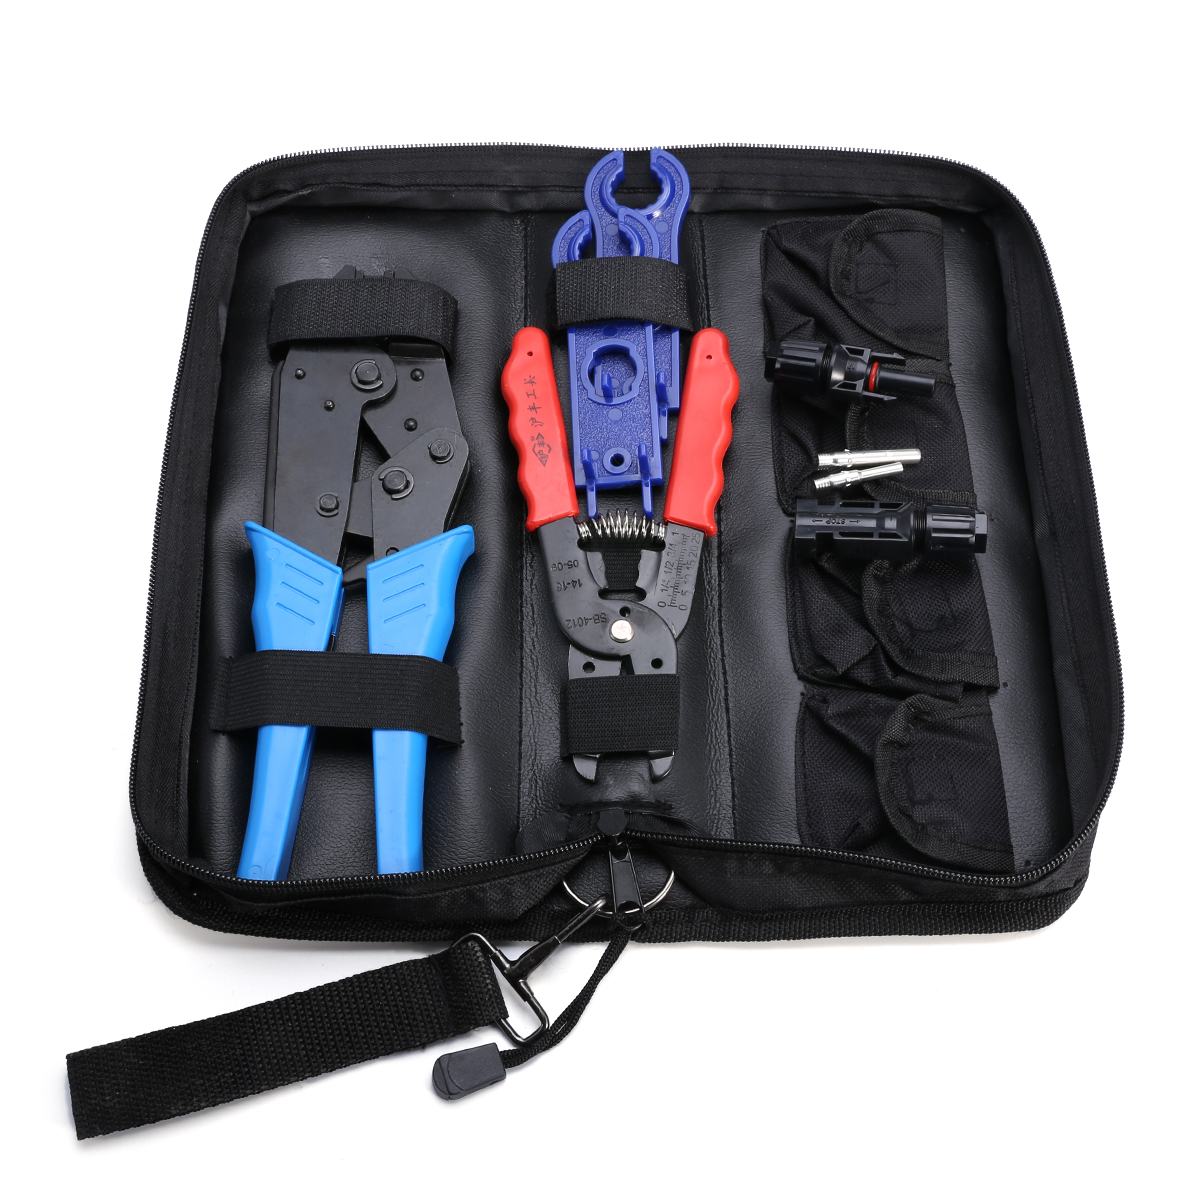 1Set Wire Stripper Cutter Cable Crimper Crimping Tool Kit with MC4 Connectors Wrenches solar crimping tool kits with 2 5 6 0mm2 crimping tool mc3 mc4 crimping die solar tool set with mc4 mc3 crimper stripper cutter